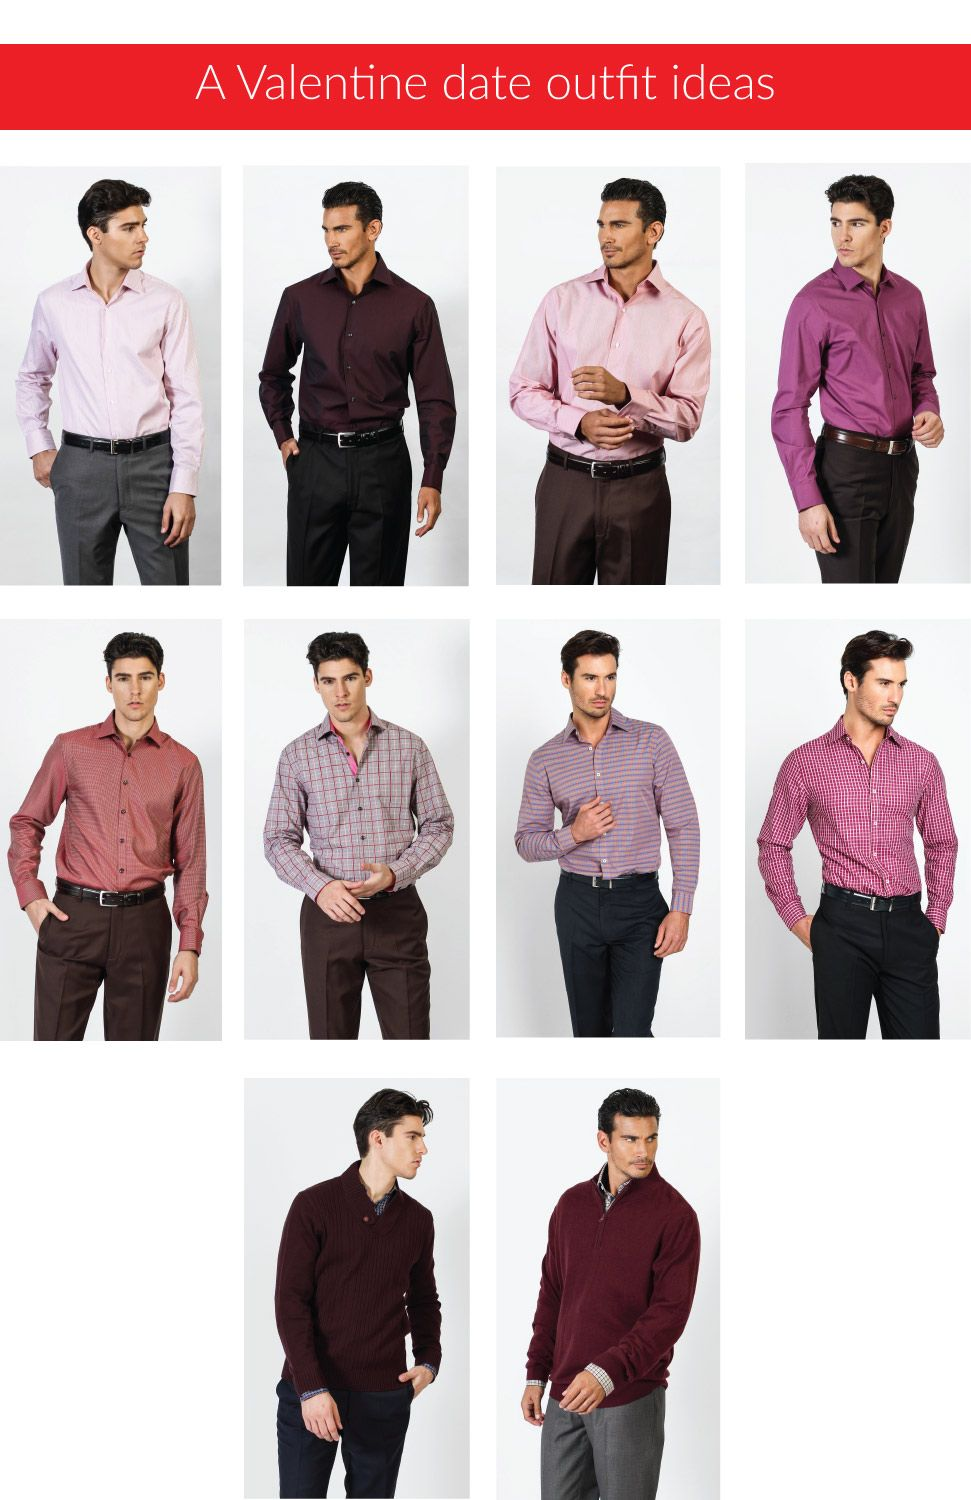 d73fbb26876aea Thinking of a valentine outfit to wear on a date? Red,pink and wine colors  can we your best choice. You can find these outfits at bachrach.